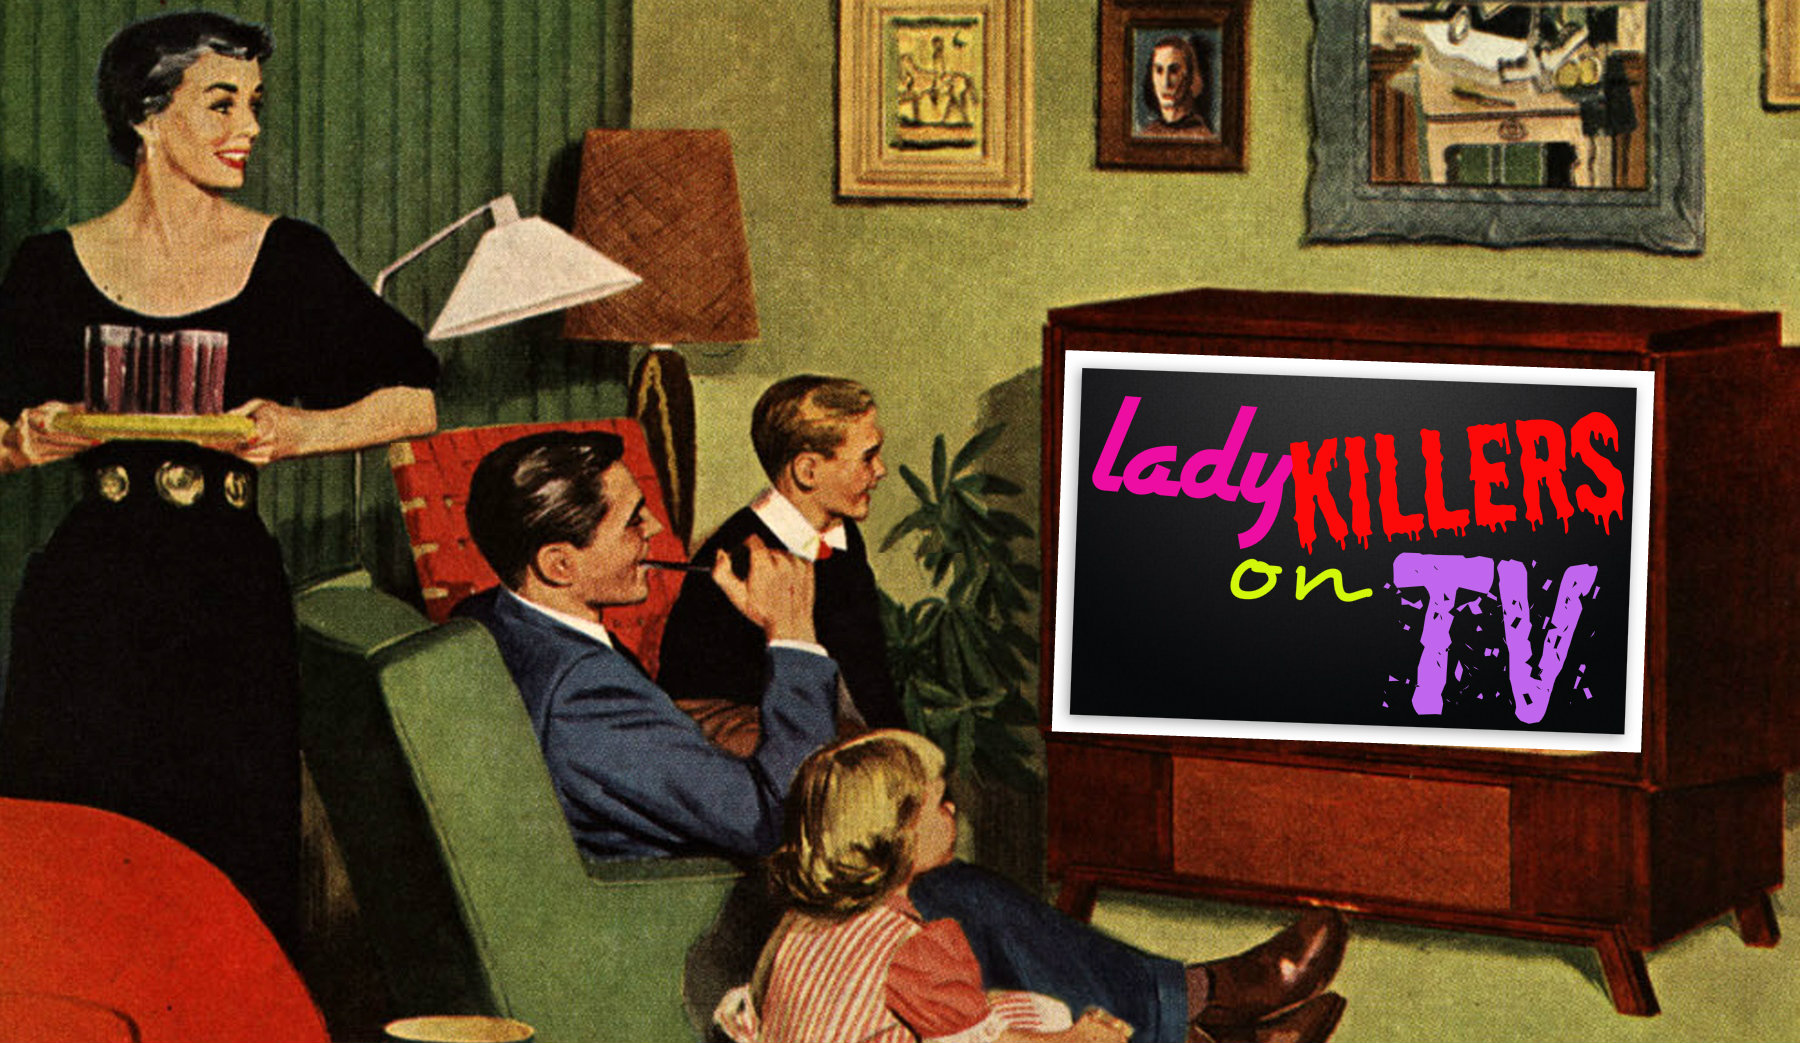 Lady Killers on TV image 1